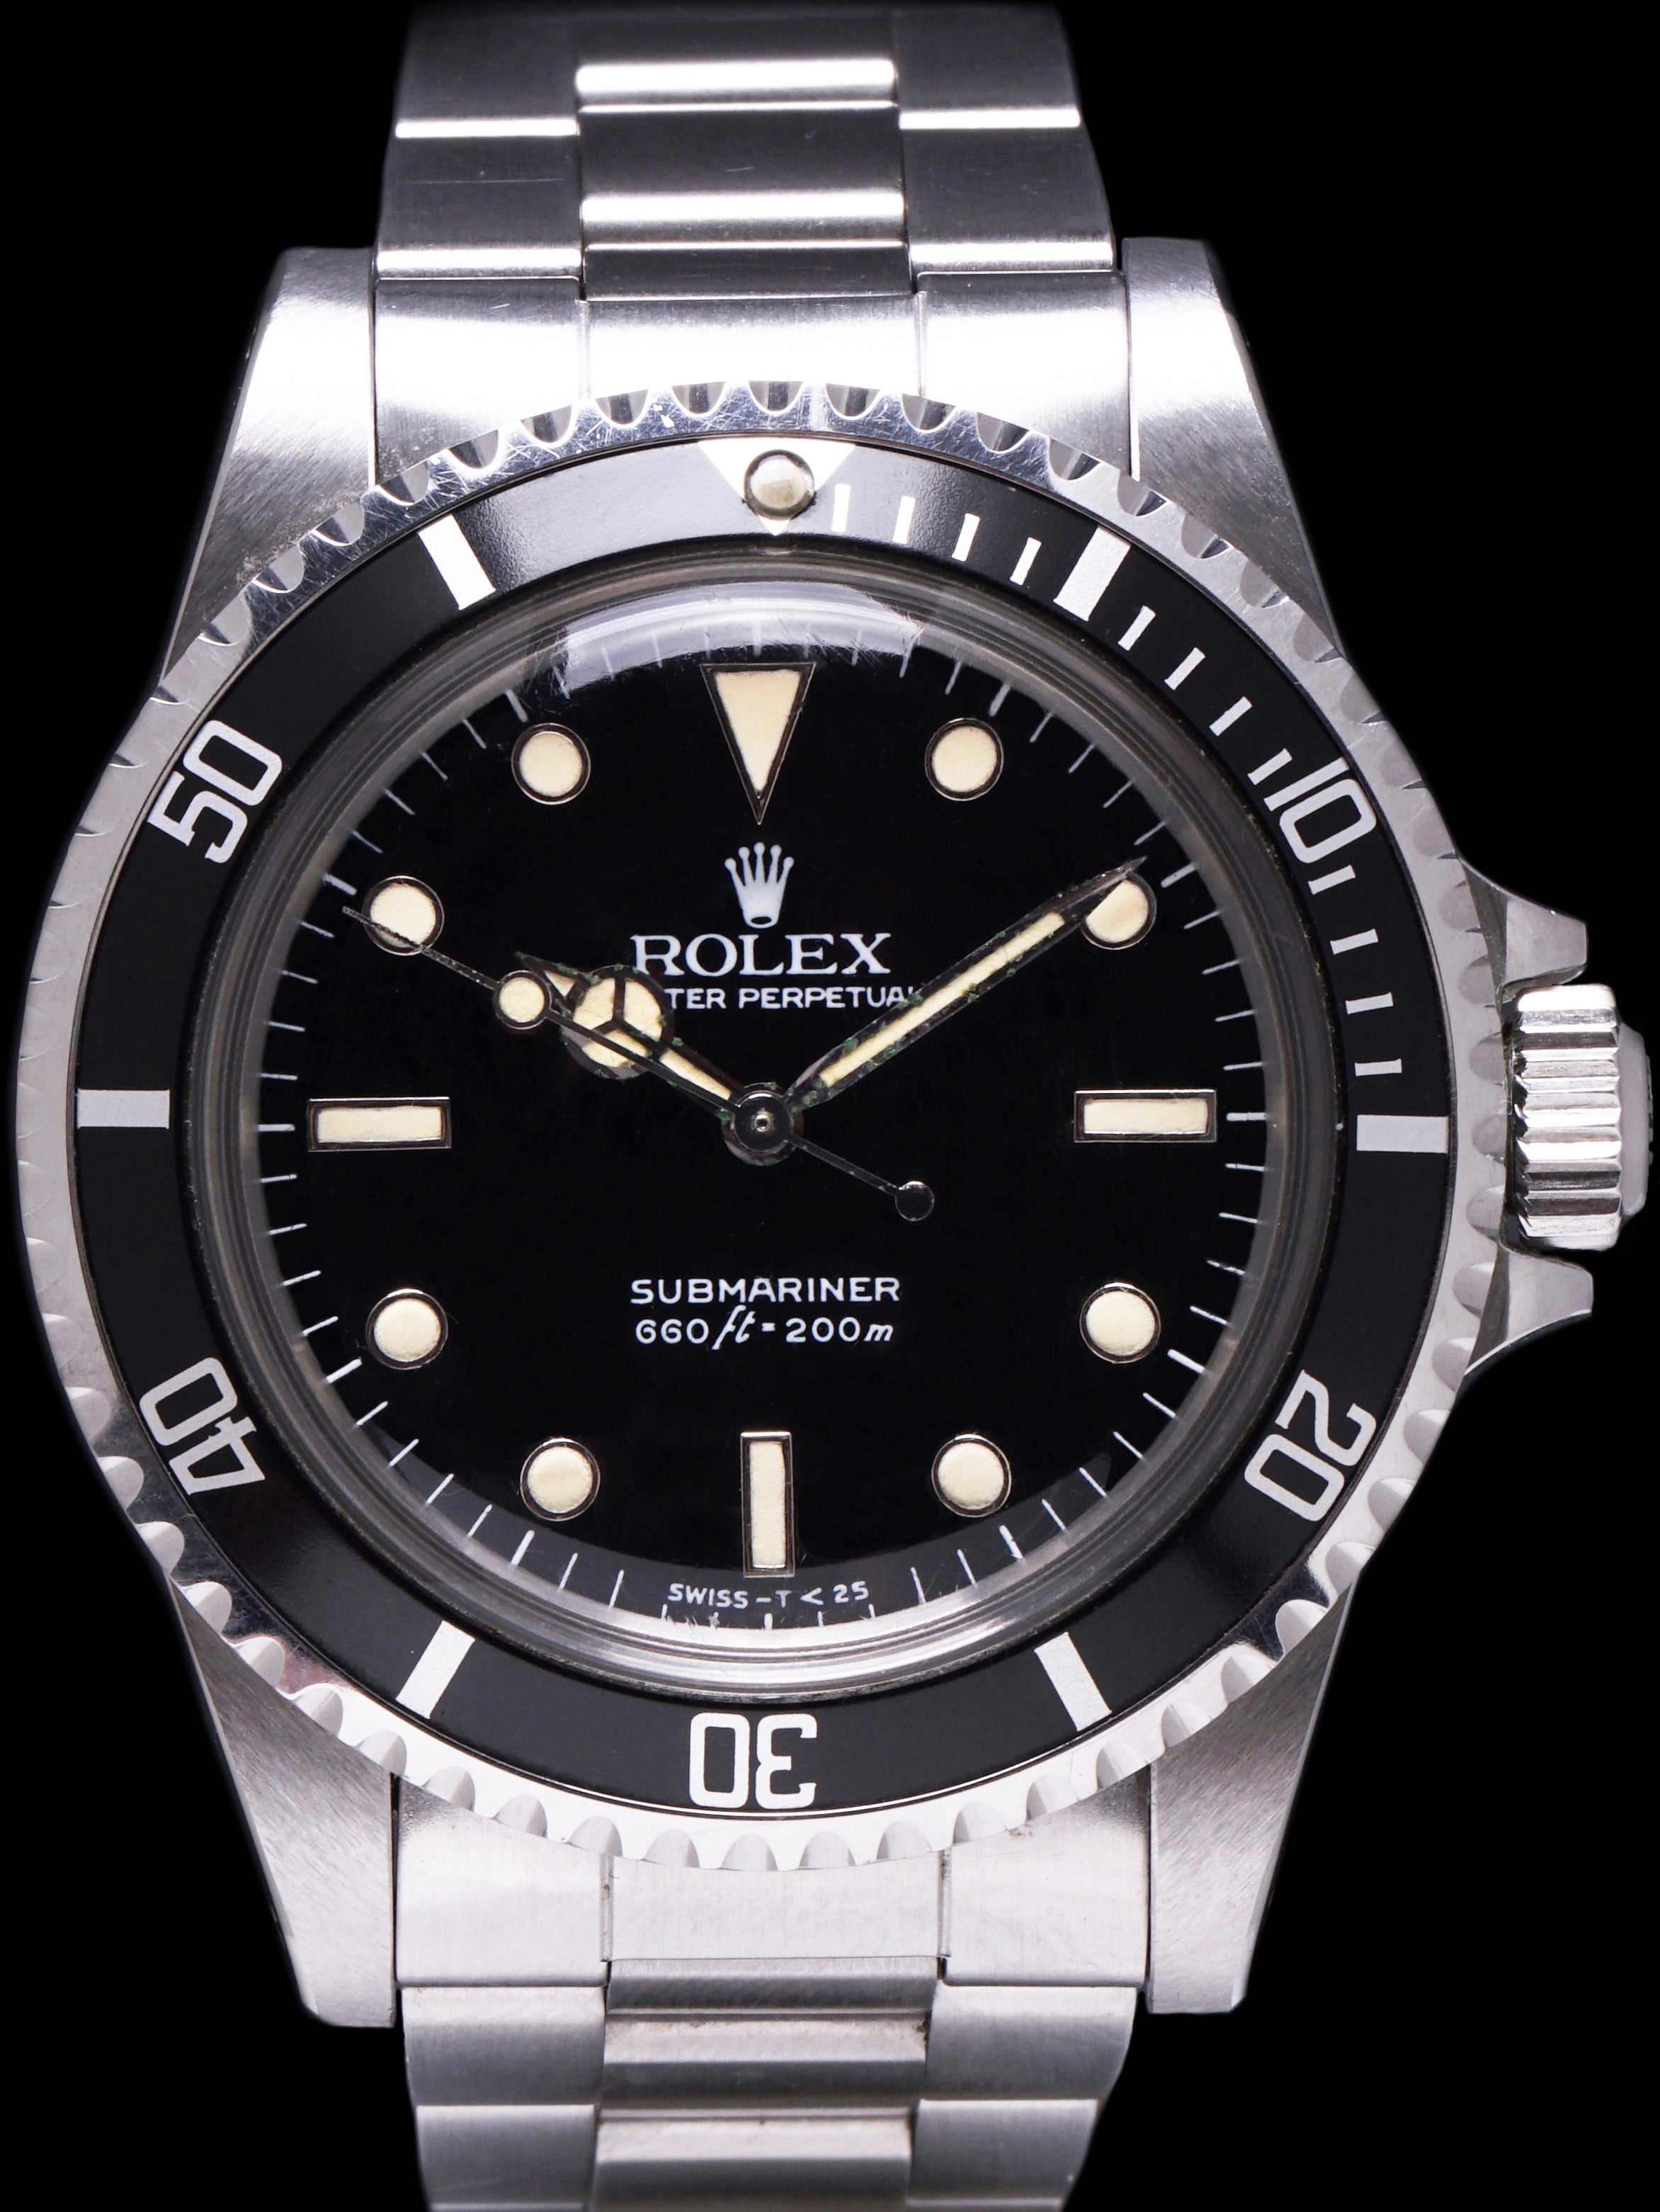 "*Unpolished* 1984 Rolex Submariner (Ref. 5513) ""Spider Dial"""